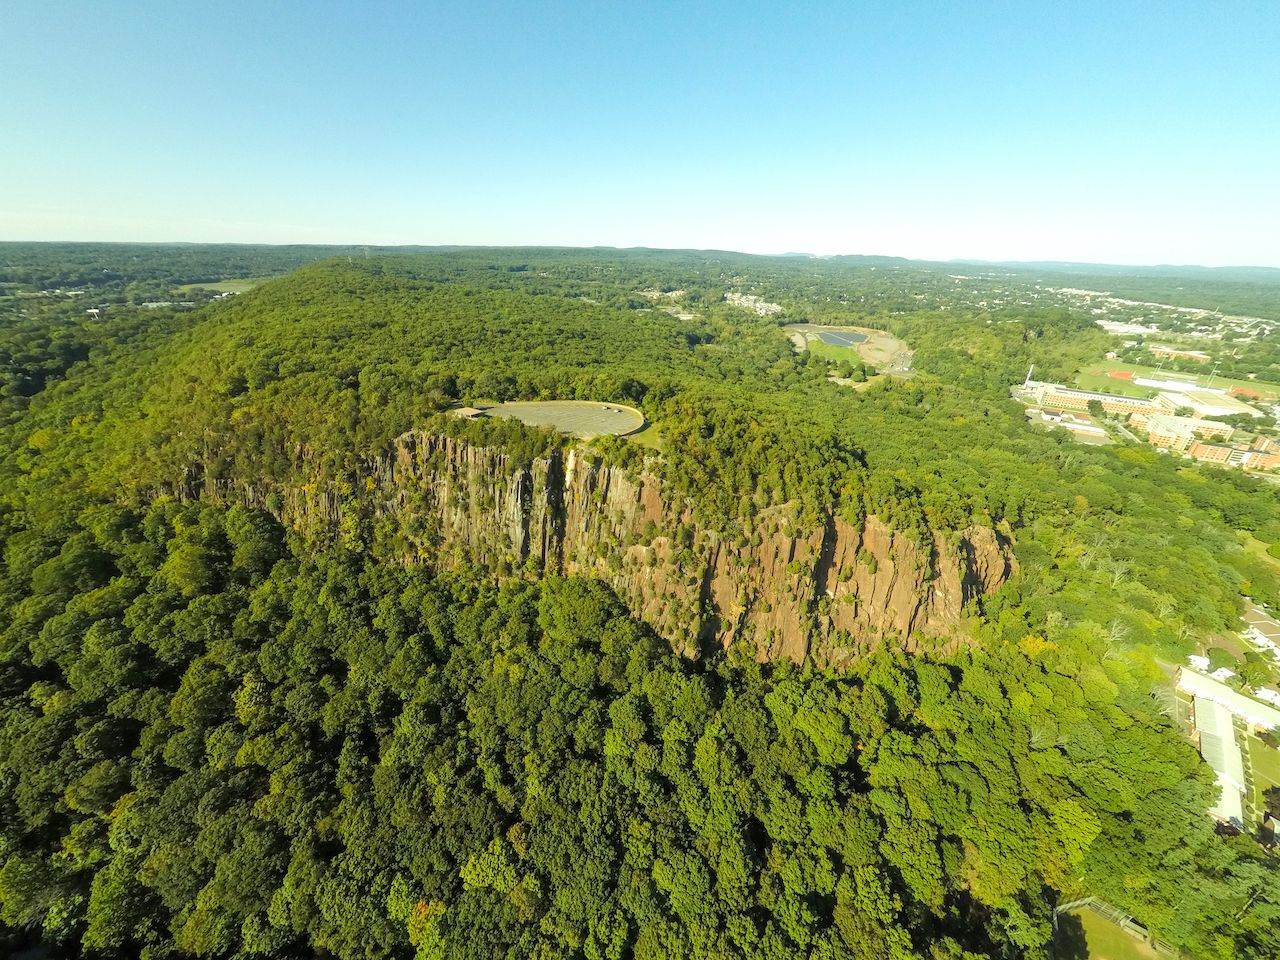 west rock mountain aerial photo